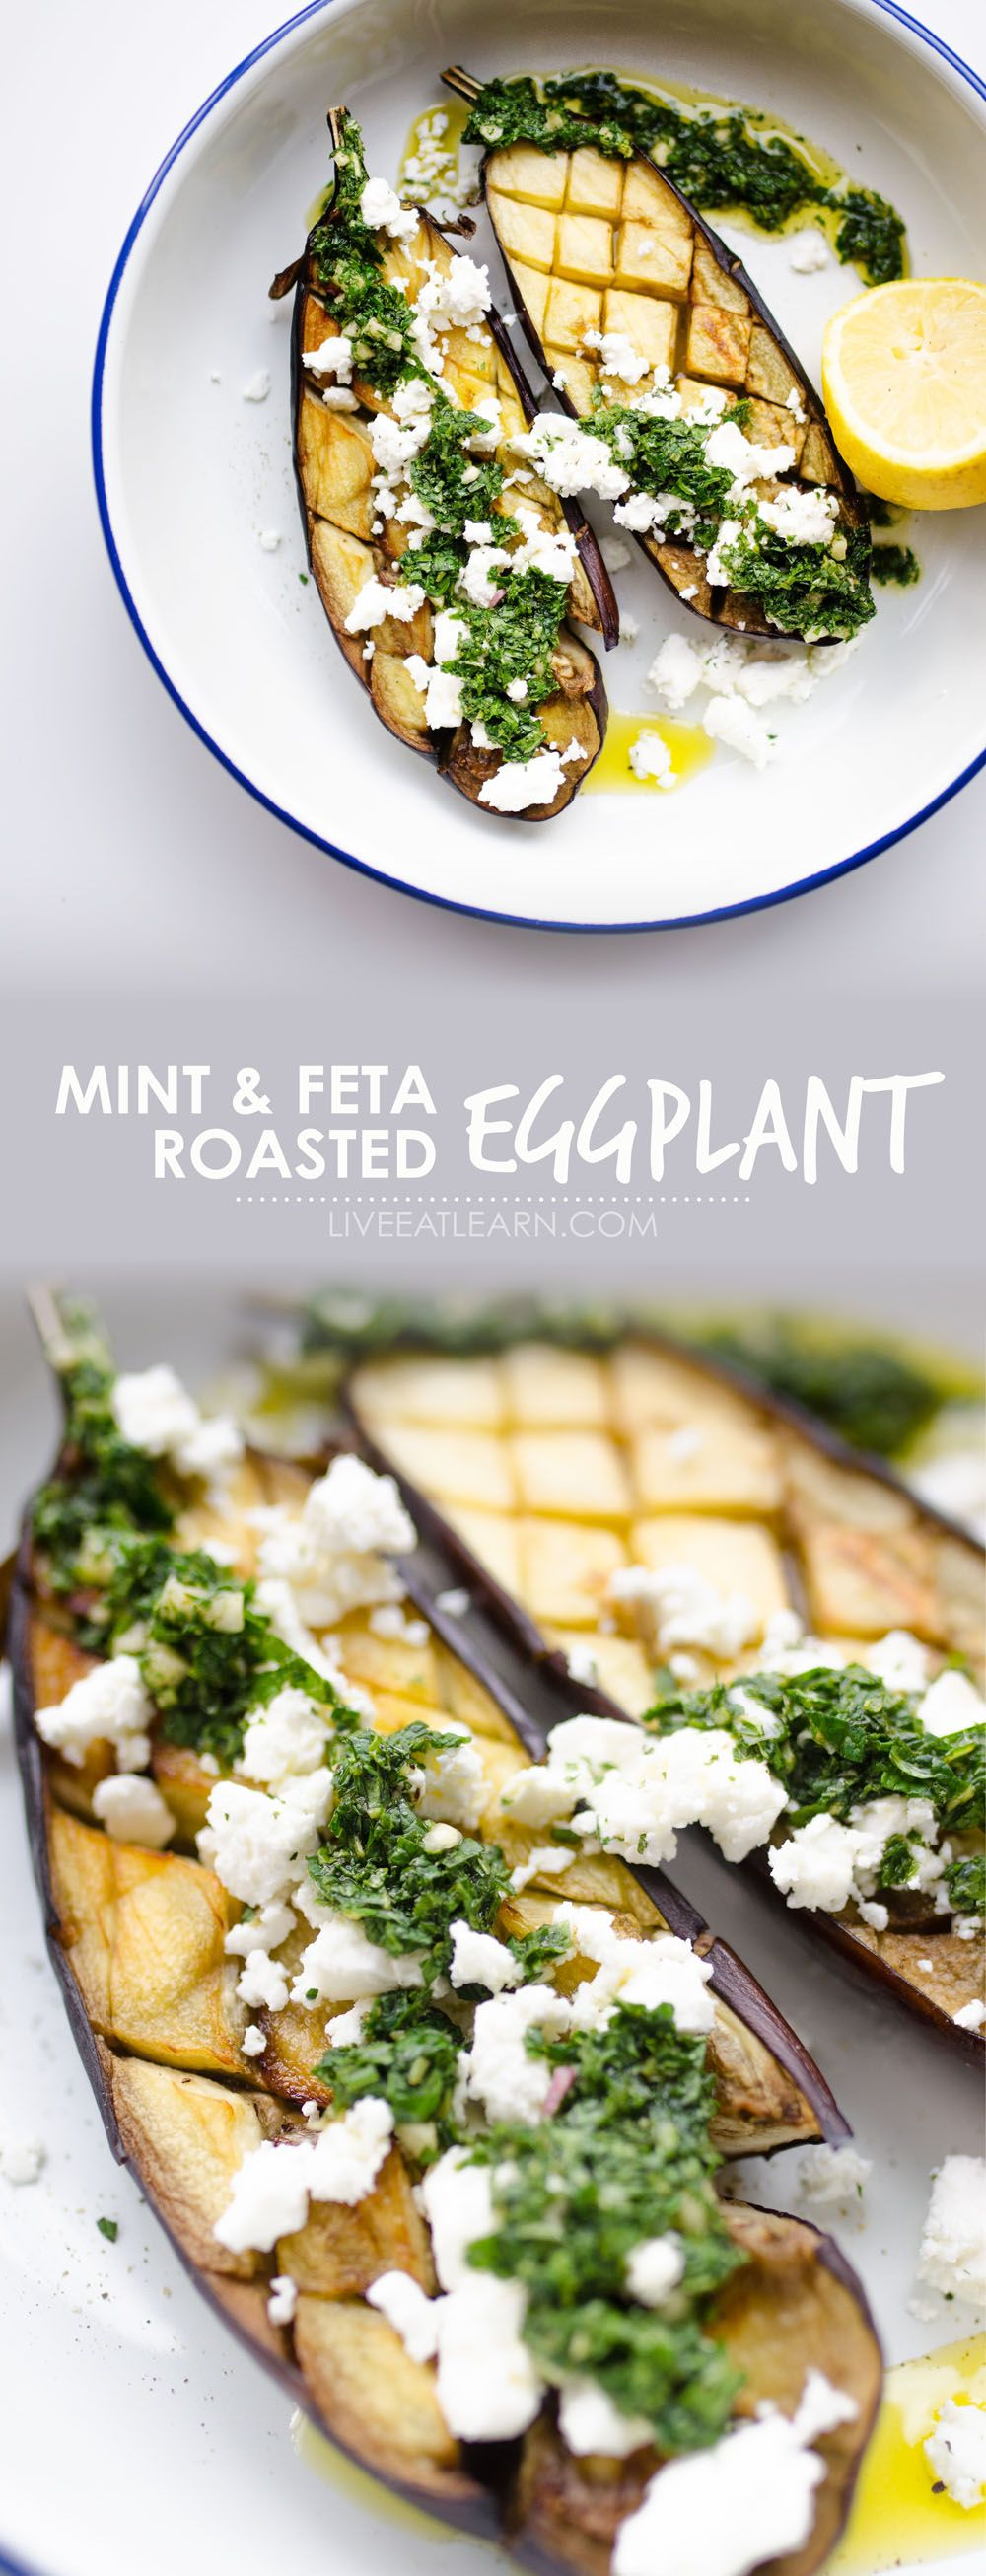 roasted eggplant with mint sauce and feta  recipe  mint